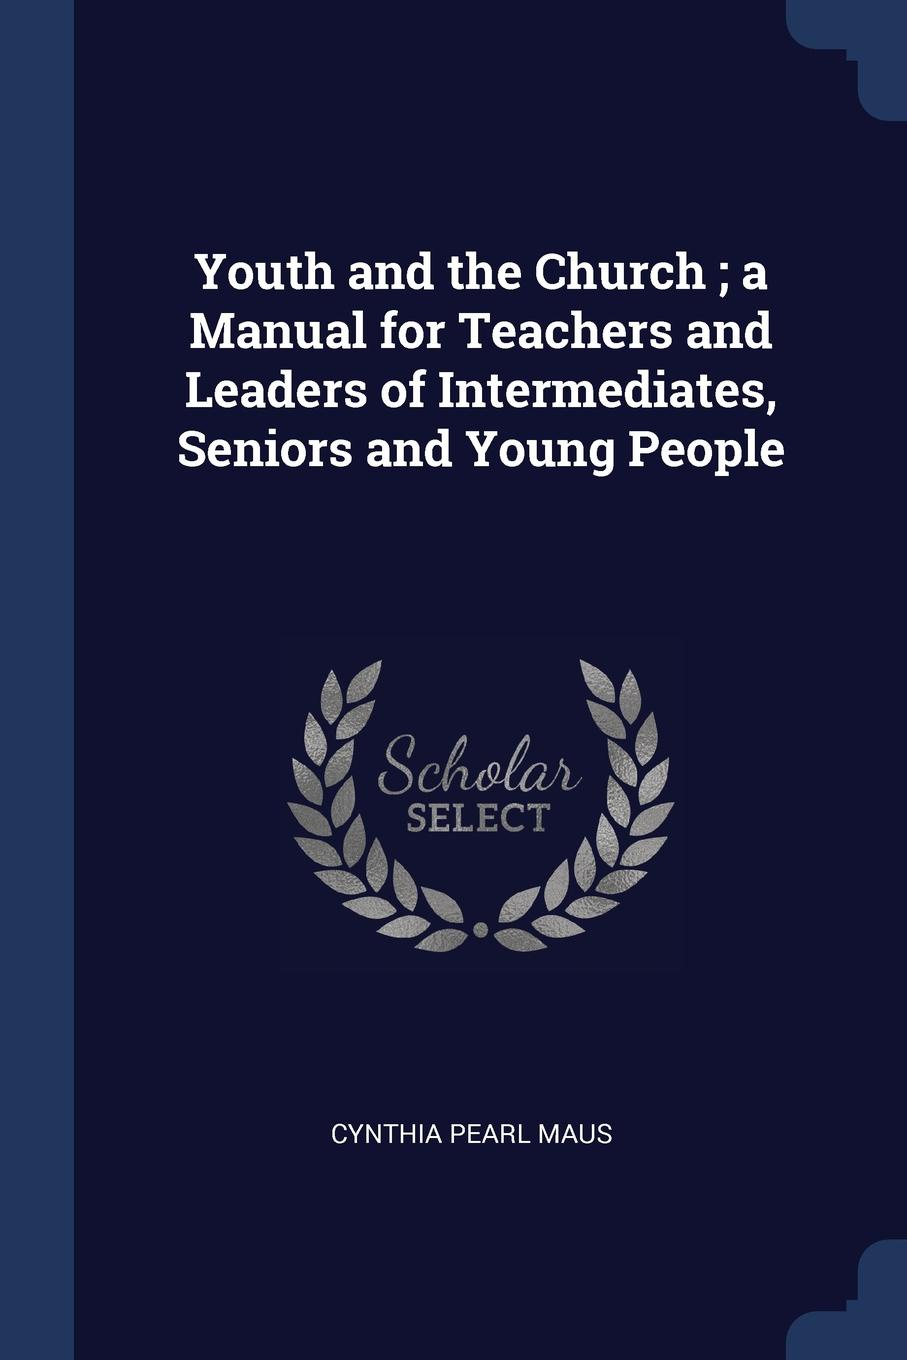 Cynthia Pearl Maus Youth and the Church ; a Manual for Teachers and Leaders of Intermediates, Seniors and Young People